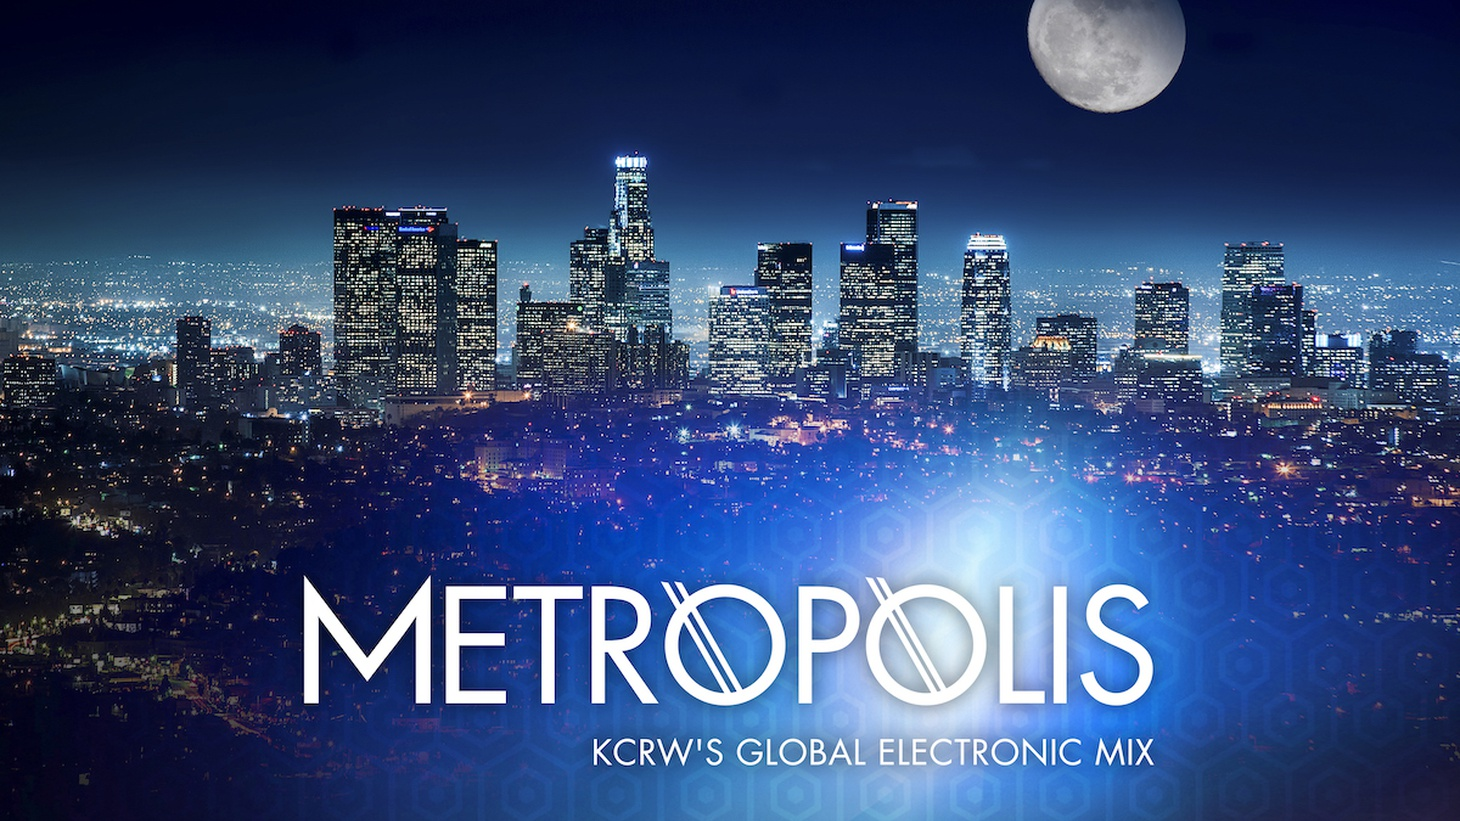 Formerly of Lazy Dog, Jay Hannan stops by Metropolis for a guest DJ set and interview.